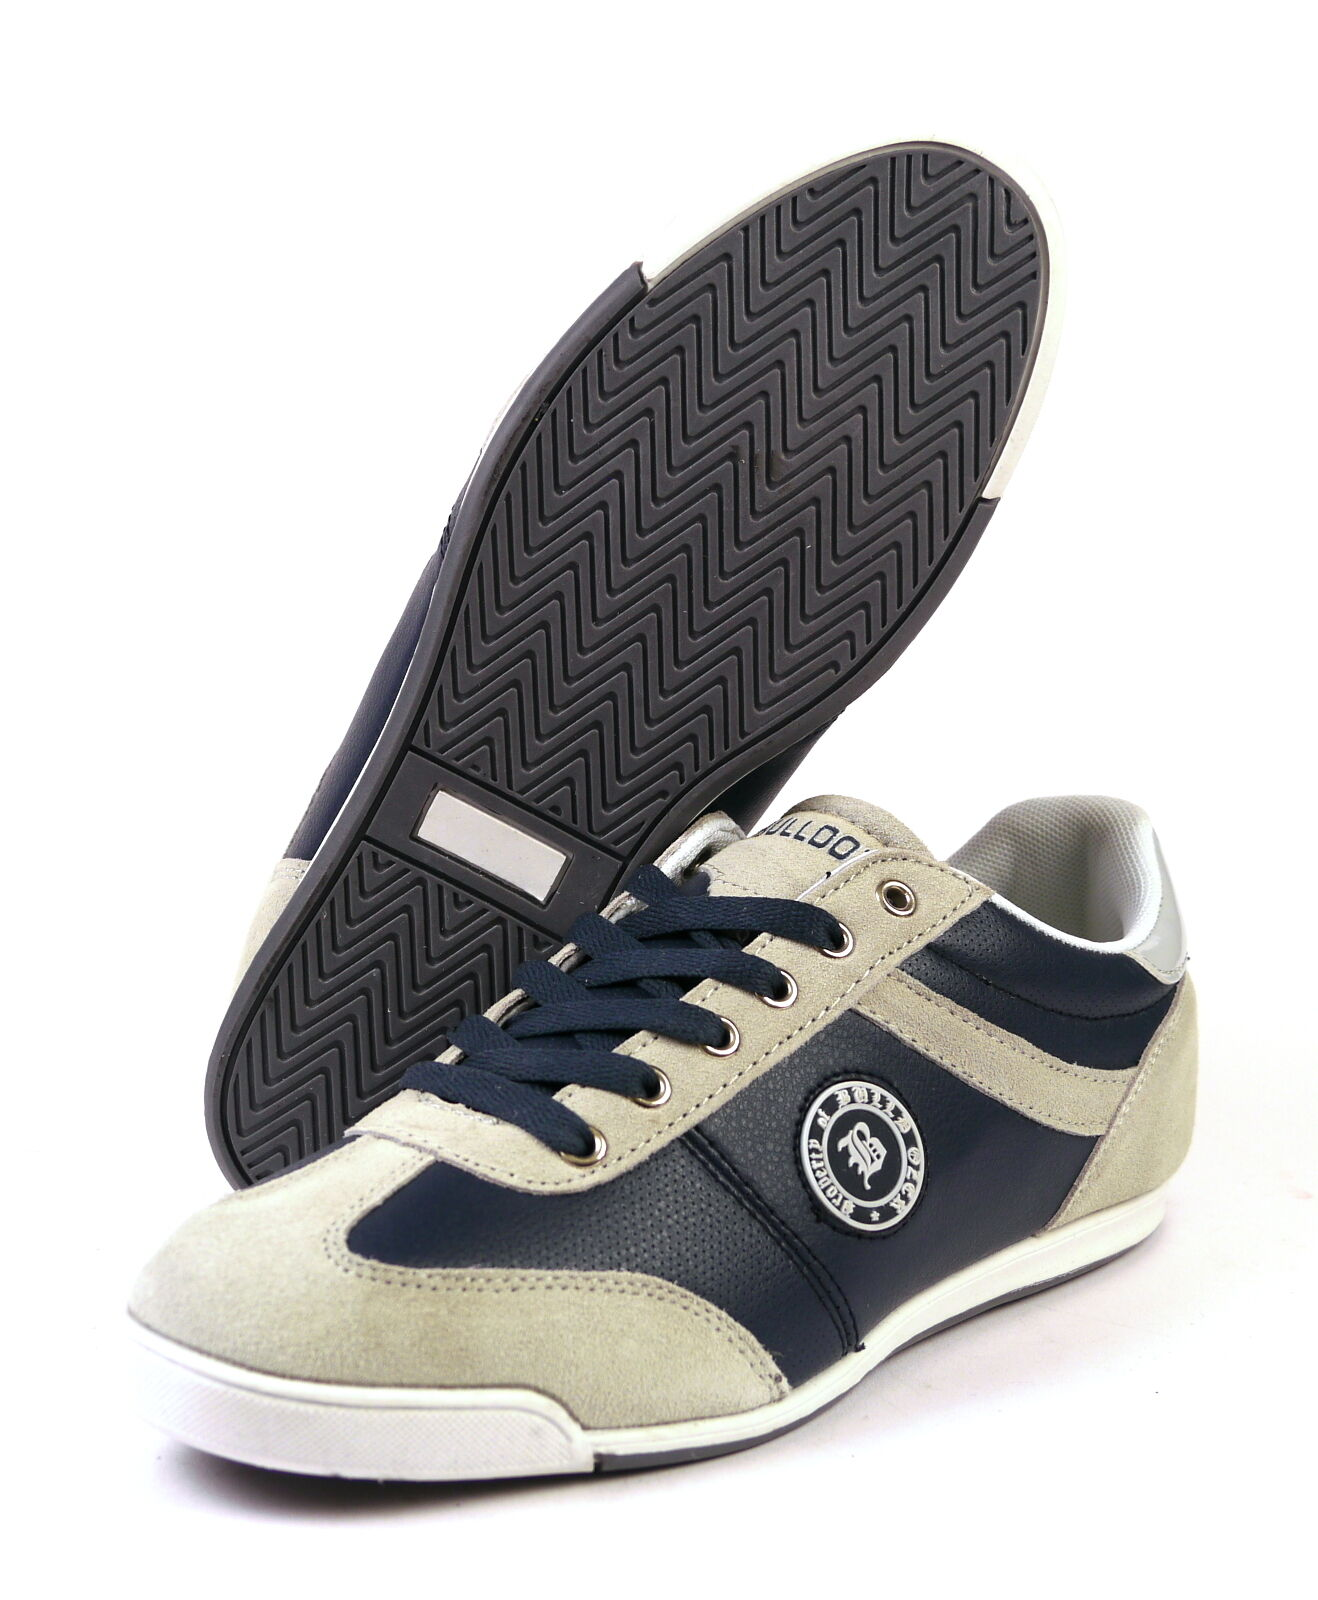 Bulldozer 6063 shoes Leather Men's Size 41 - 45 bluee NEW